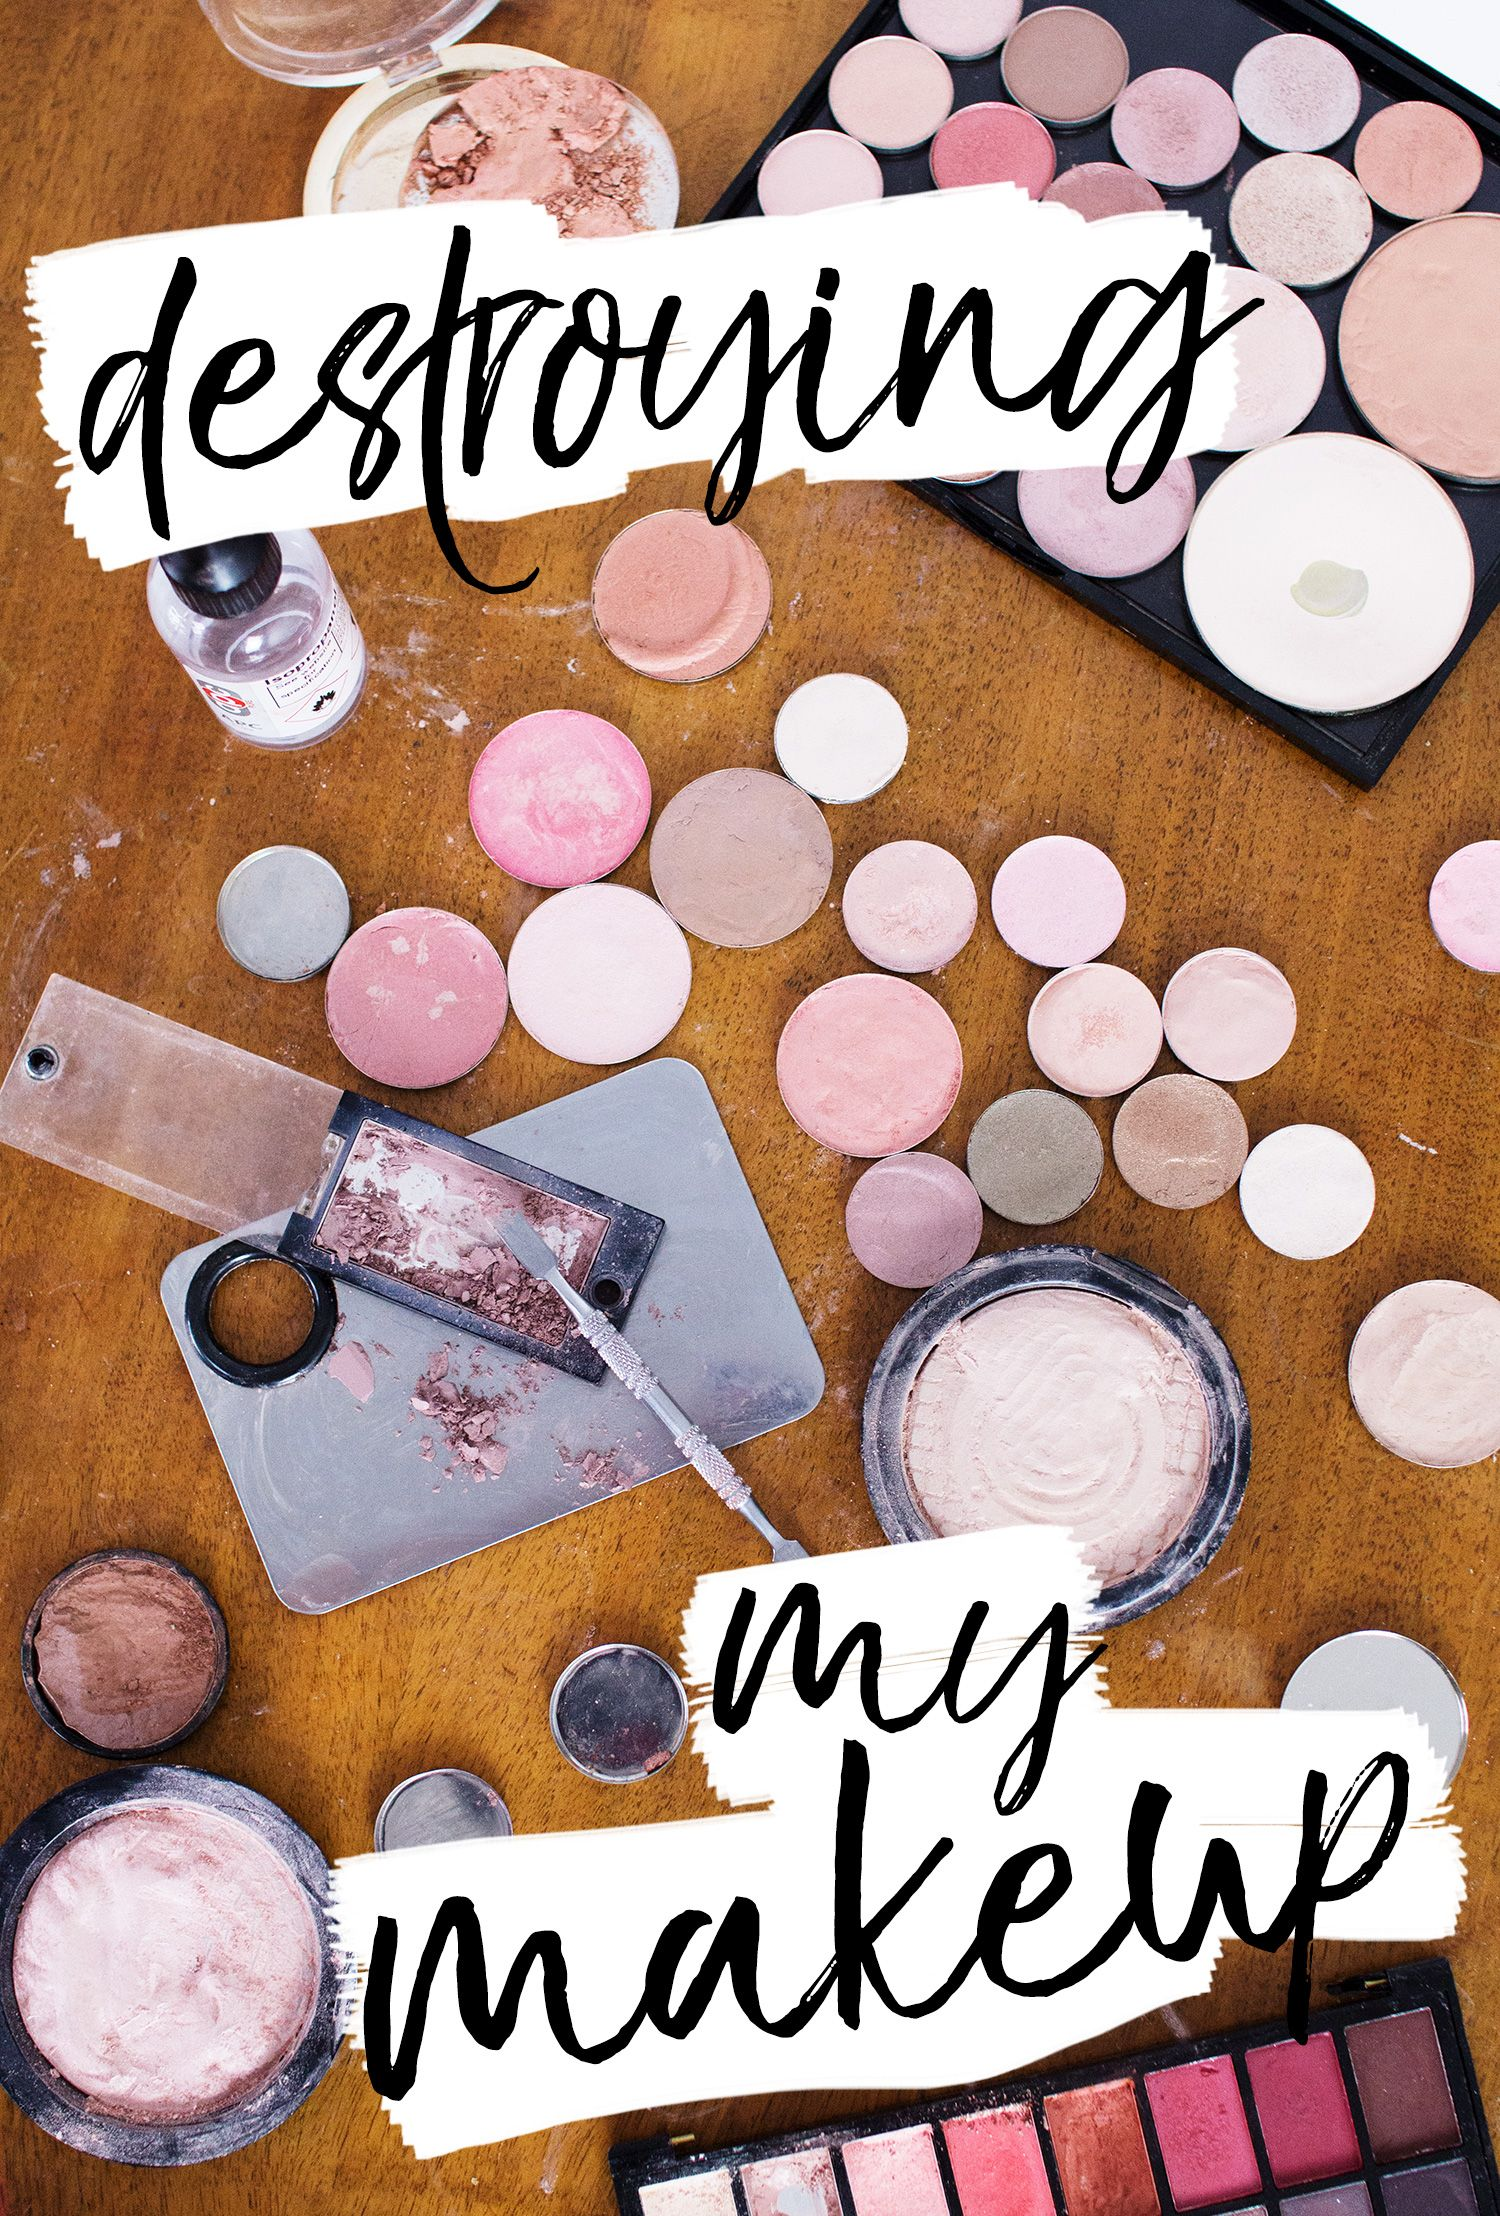 I Destroyed My Makeup for Fun... (but don't worry, I